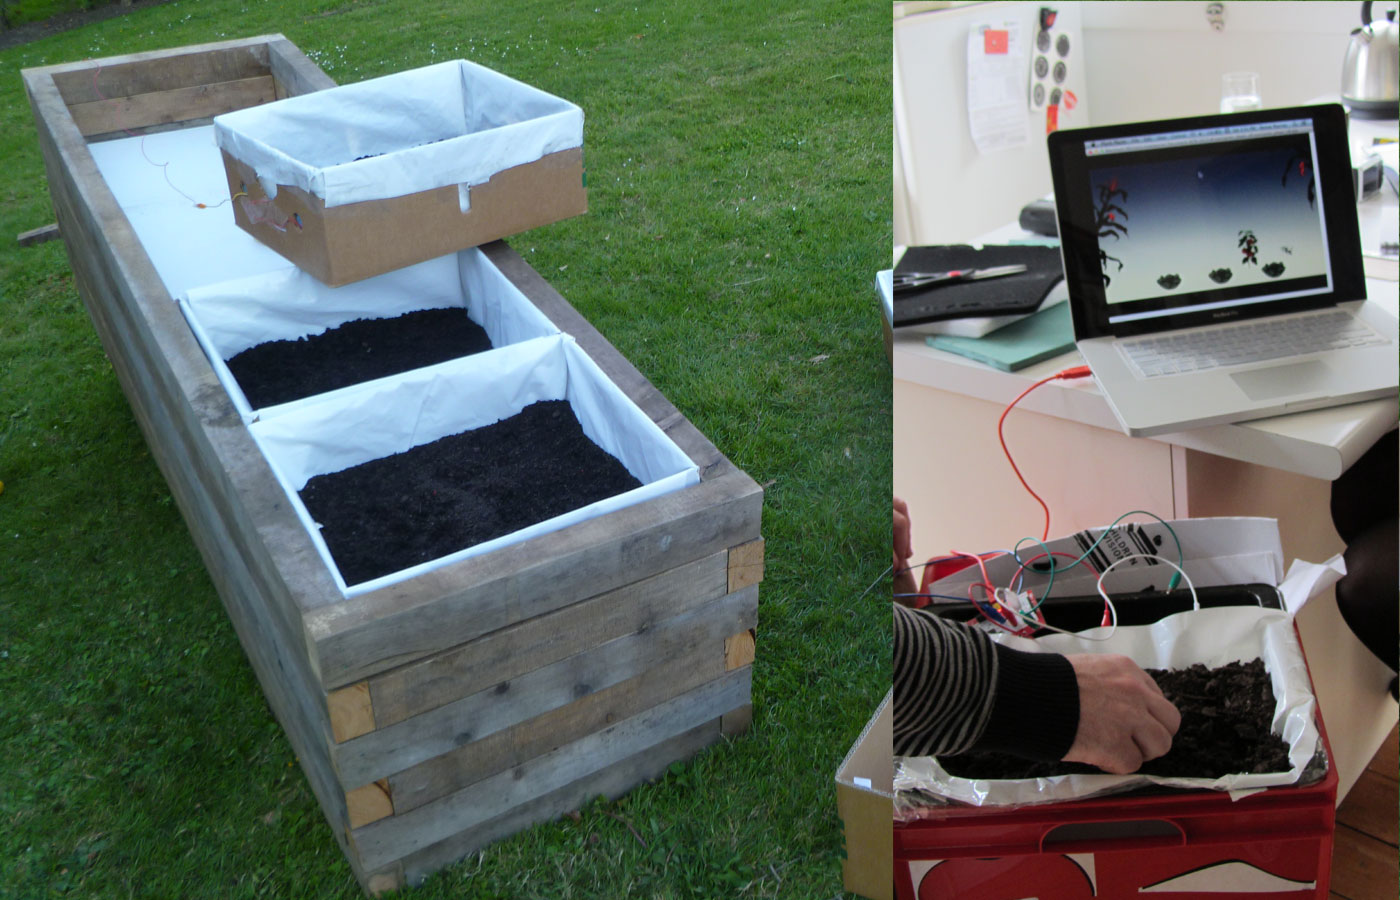 Plant The Seed build process - sensor box video test